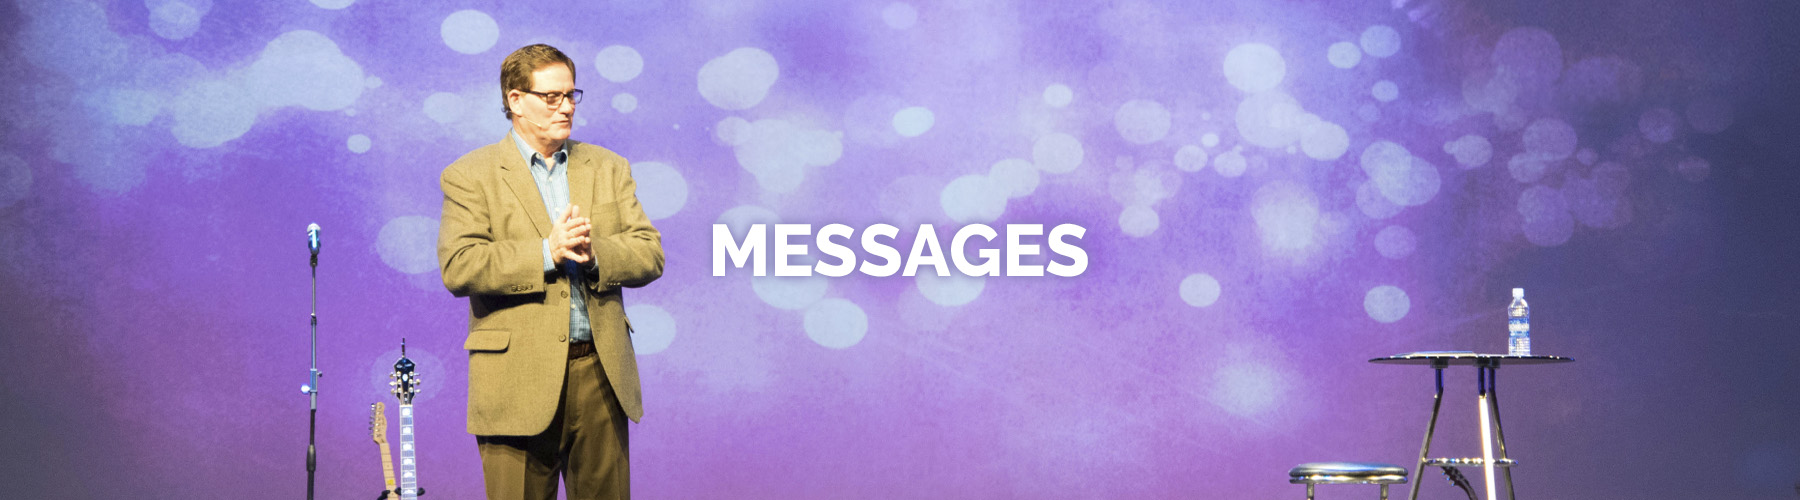 Weekly Messages Header